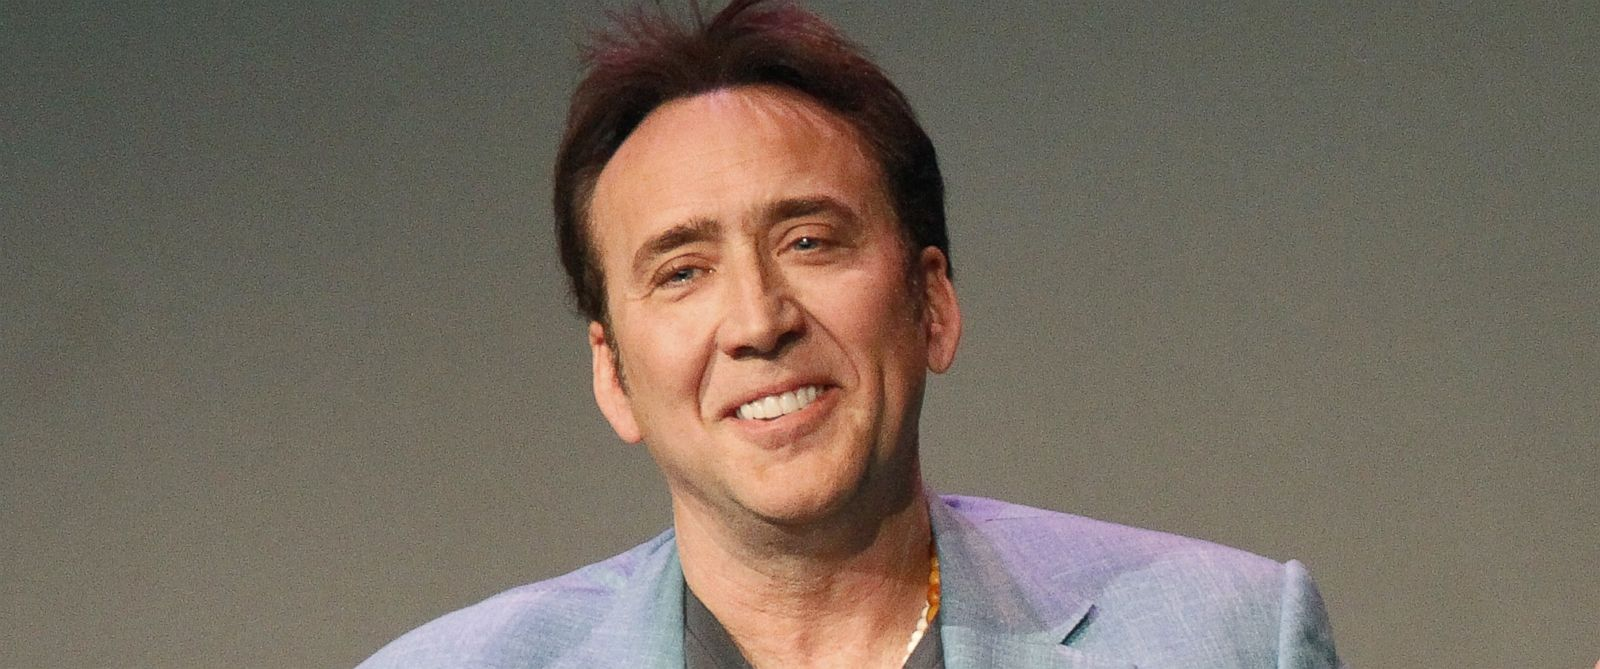 nicolas cage filmenicolas cage films, nicolas cage movies, nicolas cage face, nicolas cage filmleri, nicolas cage instagram, nicolas cage gif, nicolas cage son, nicolas cage superman, nicolas cage 2016, nicolas cage memes, nicolas cage 2017, nicolas cage height, nicolas cage young, nicolas cage wiki, nicolas cage filme, nicolas cage imdb, nicolas cage laugh, nicolas cage ghost rider, nicolas cage face off, nicolas cage movies list